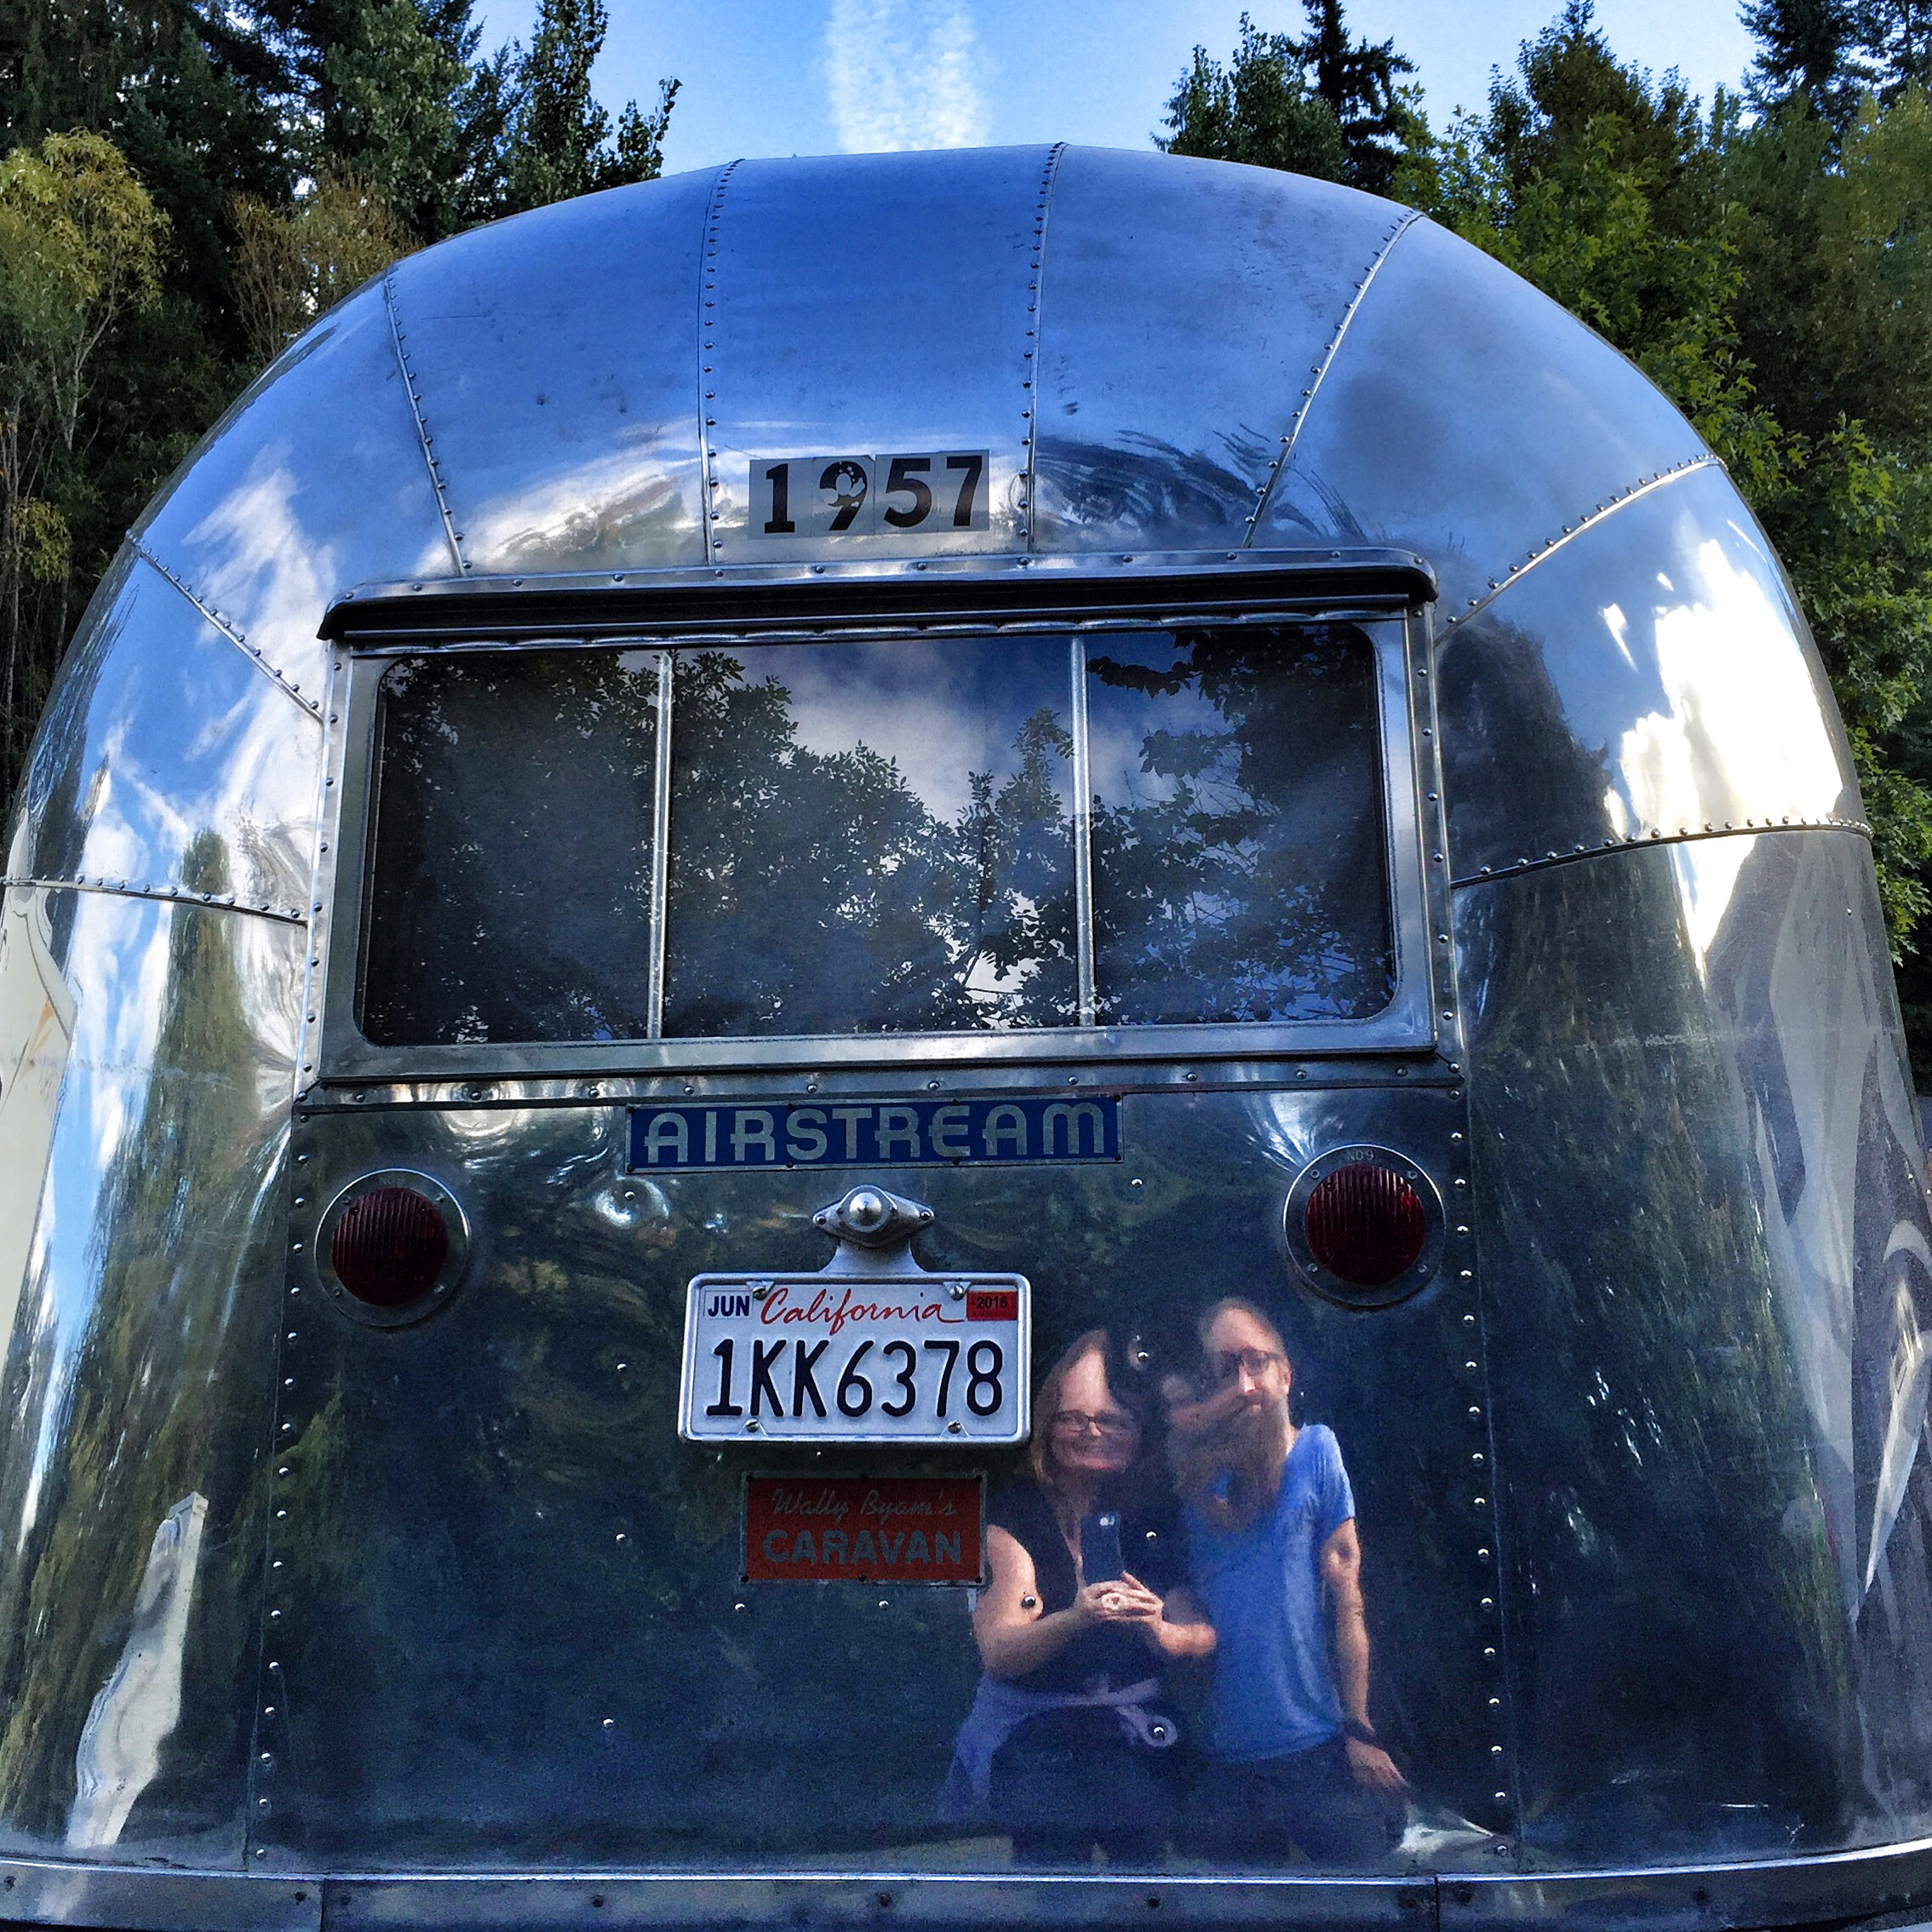 Fun house mirror reflection in vintage airstream